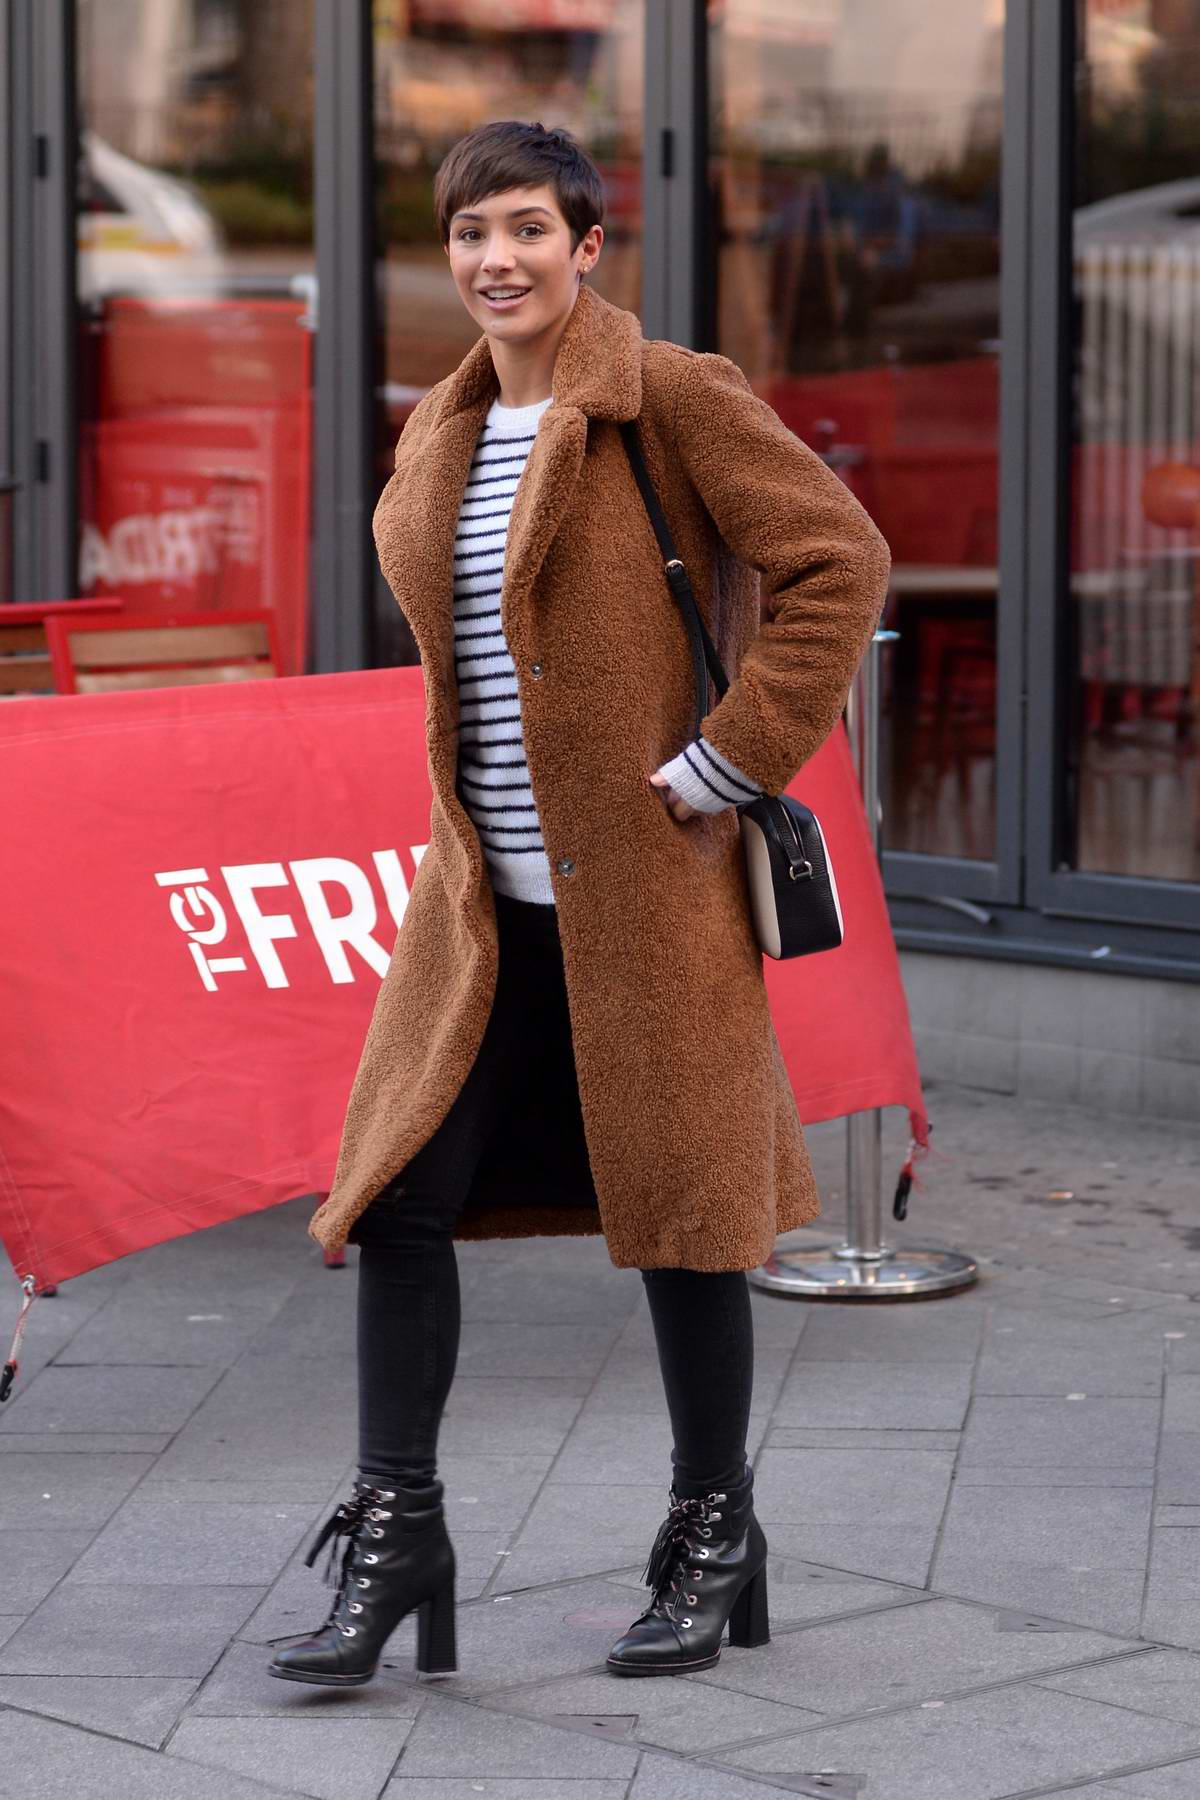 Frankie Bridge spotted running errands in Leicester Square, London